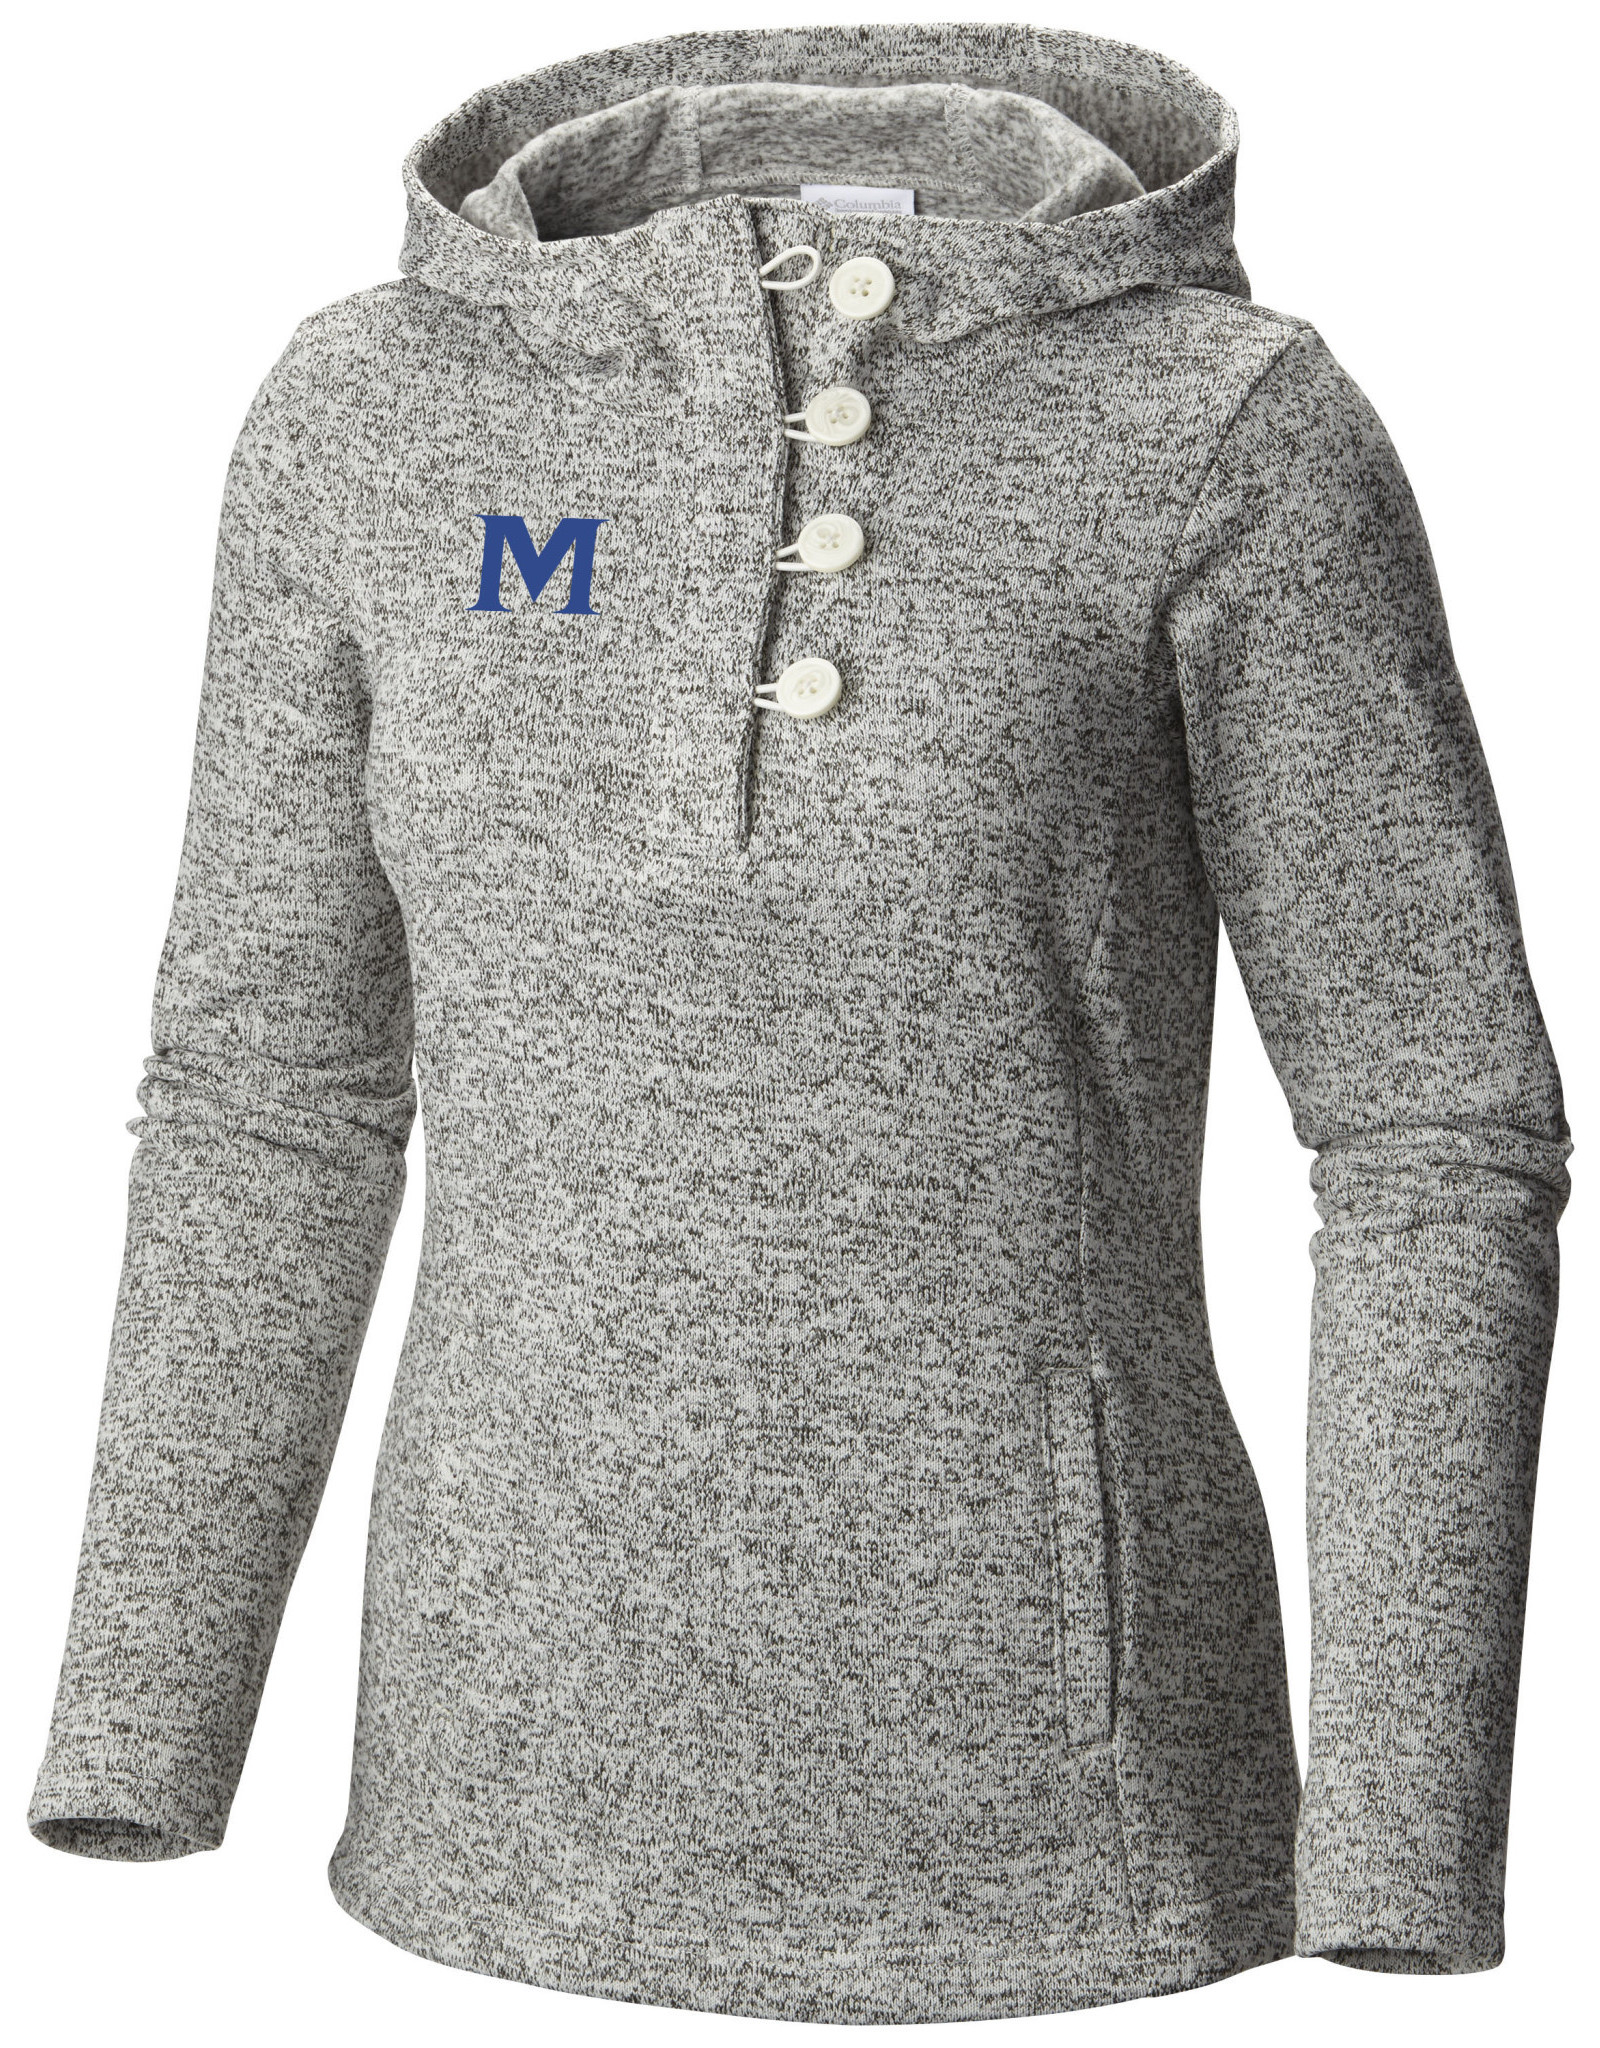 WOMEN'S COLUMBIA SWEATER HOODIE